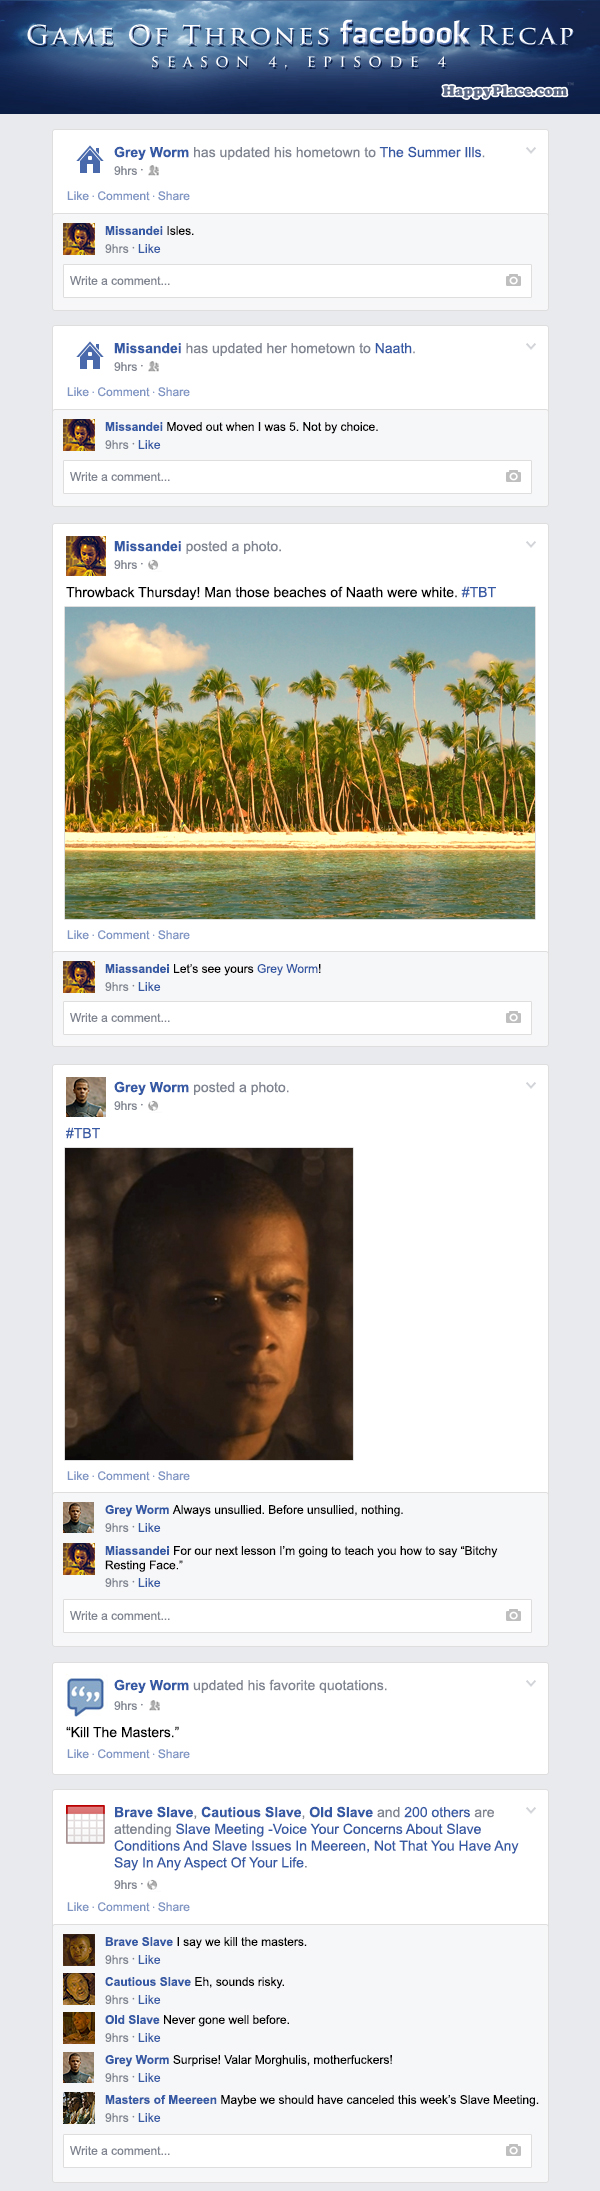 If Game of Thrones took place entirely on Facebook - Season 4, Episode 4.